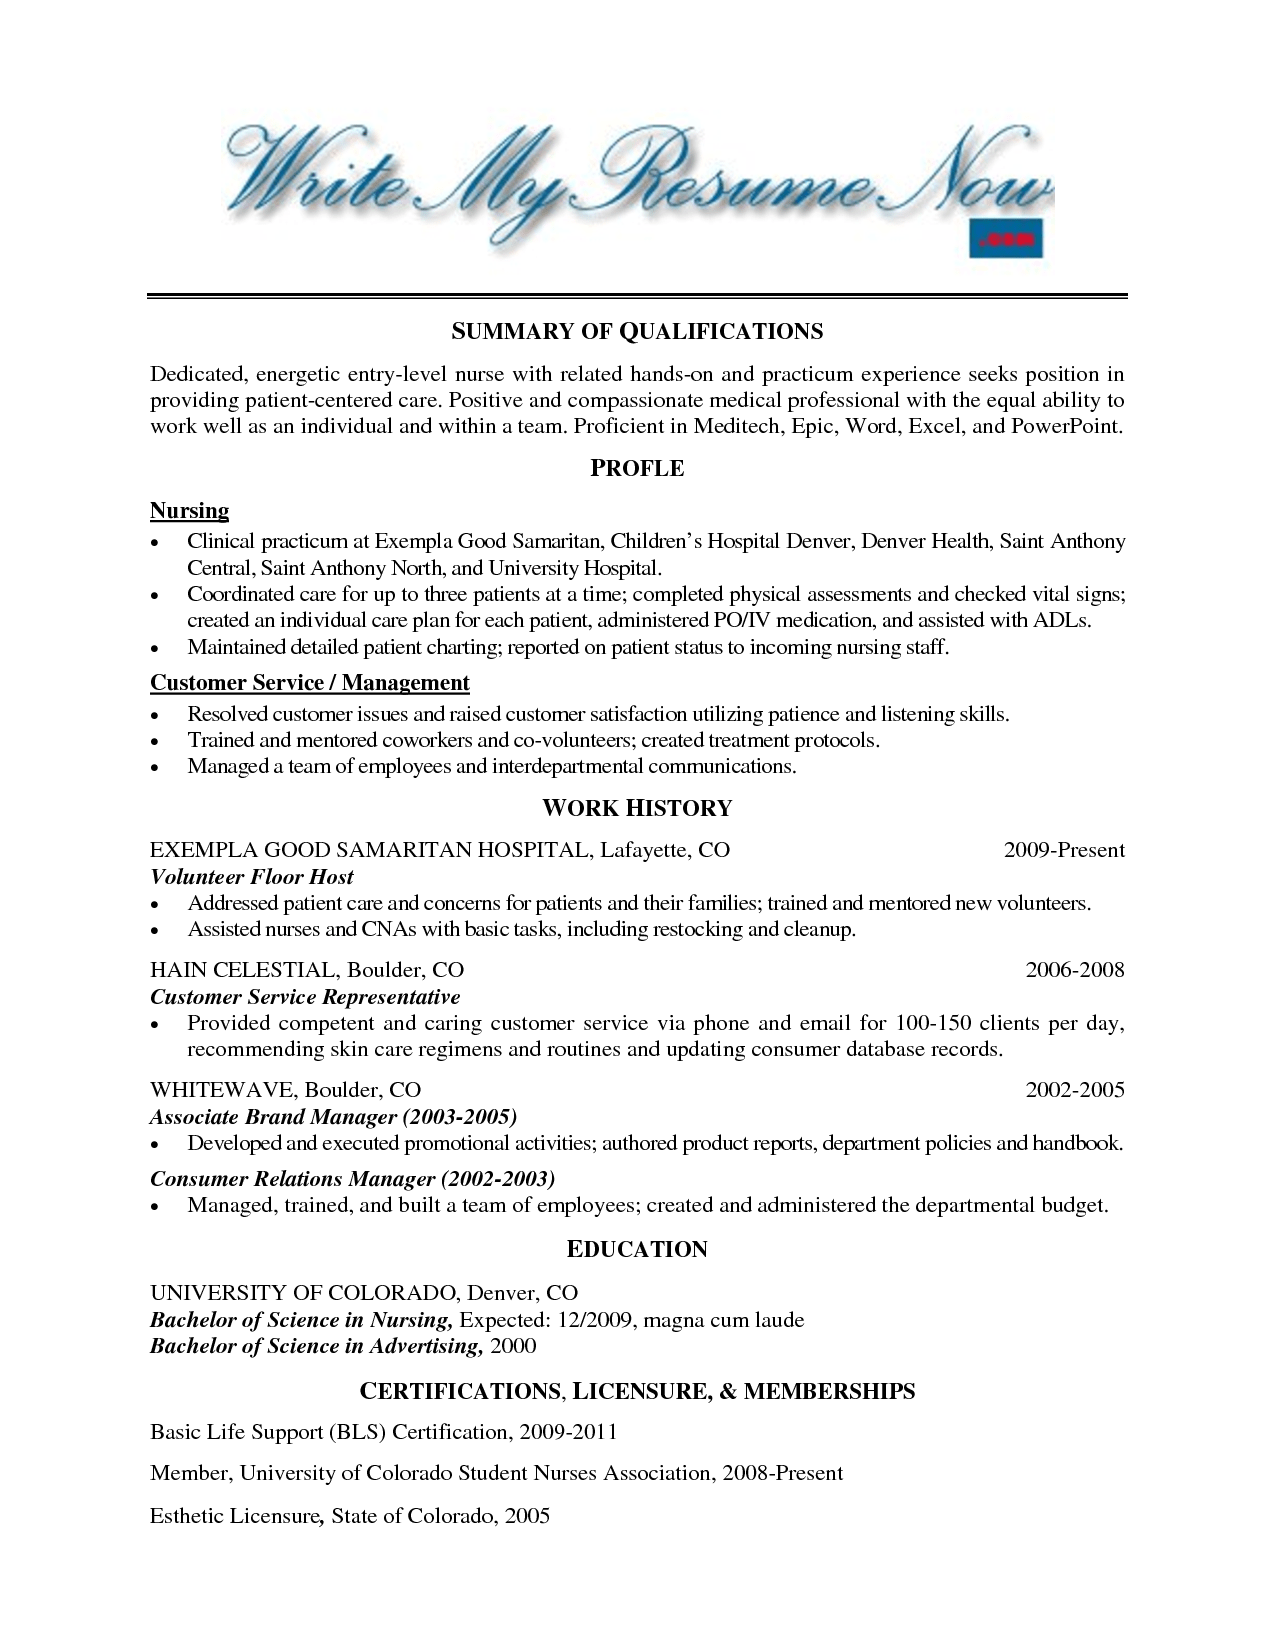 Sample Resume For Volunteer Work Example Good Resume Template Listing  Volunteer Work On Resume Example  Listing Volunteer Work On Resume